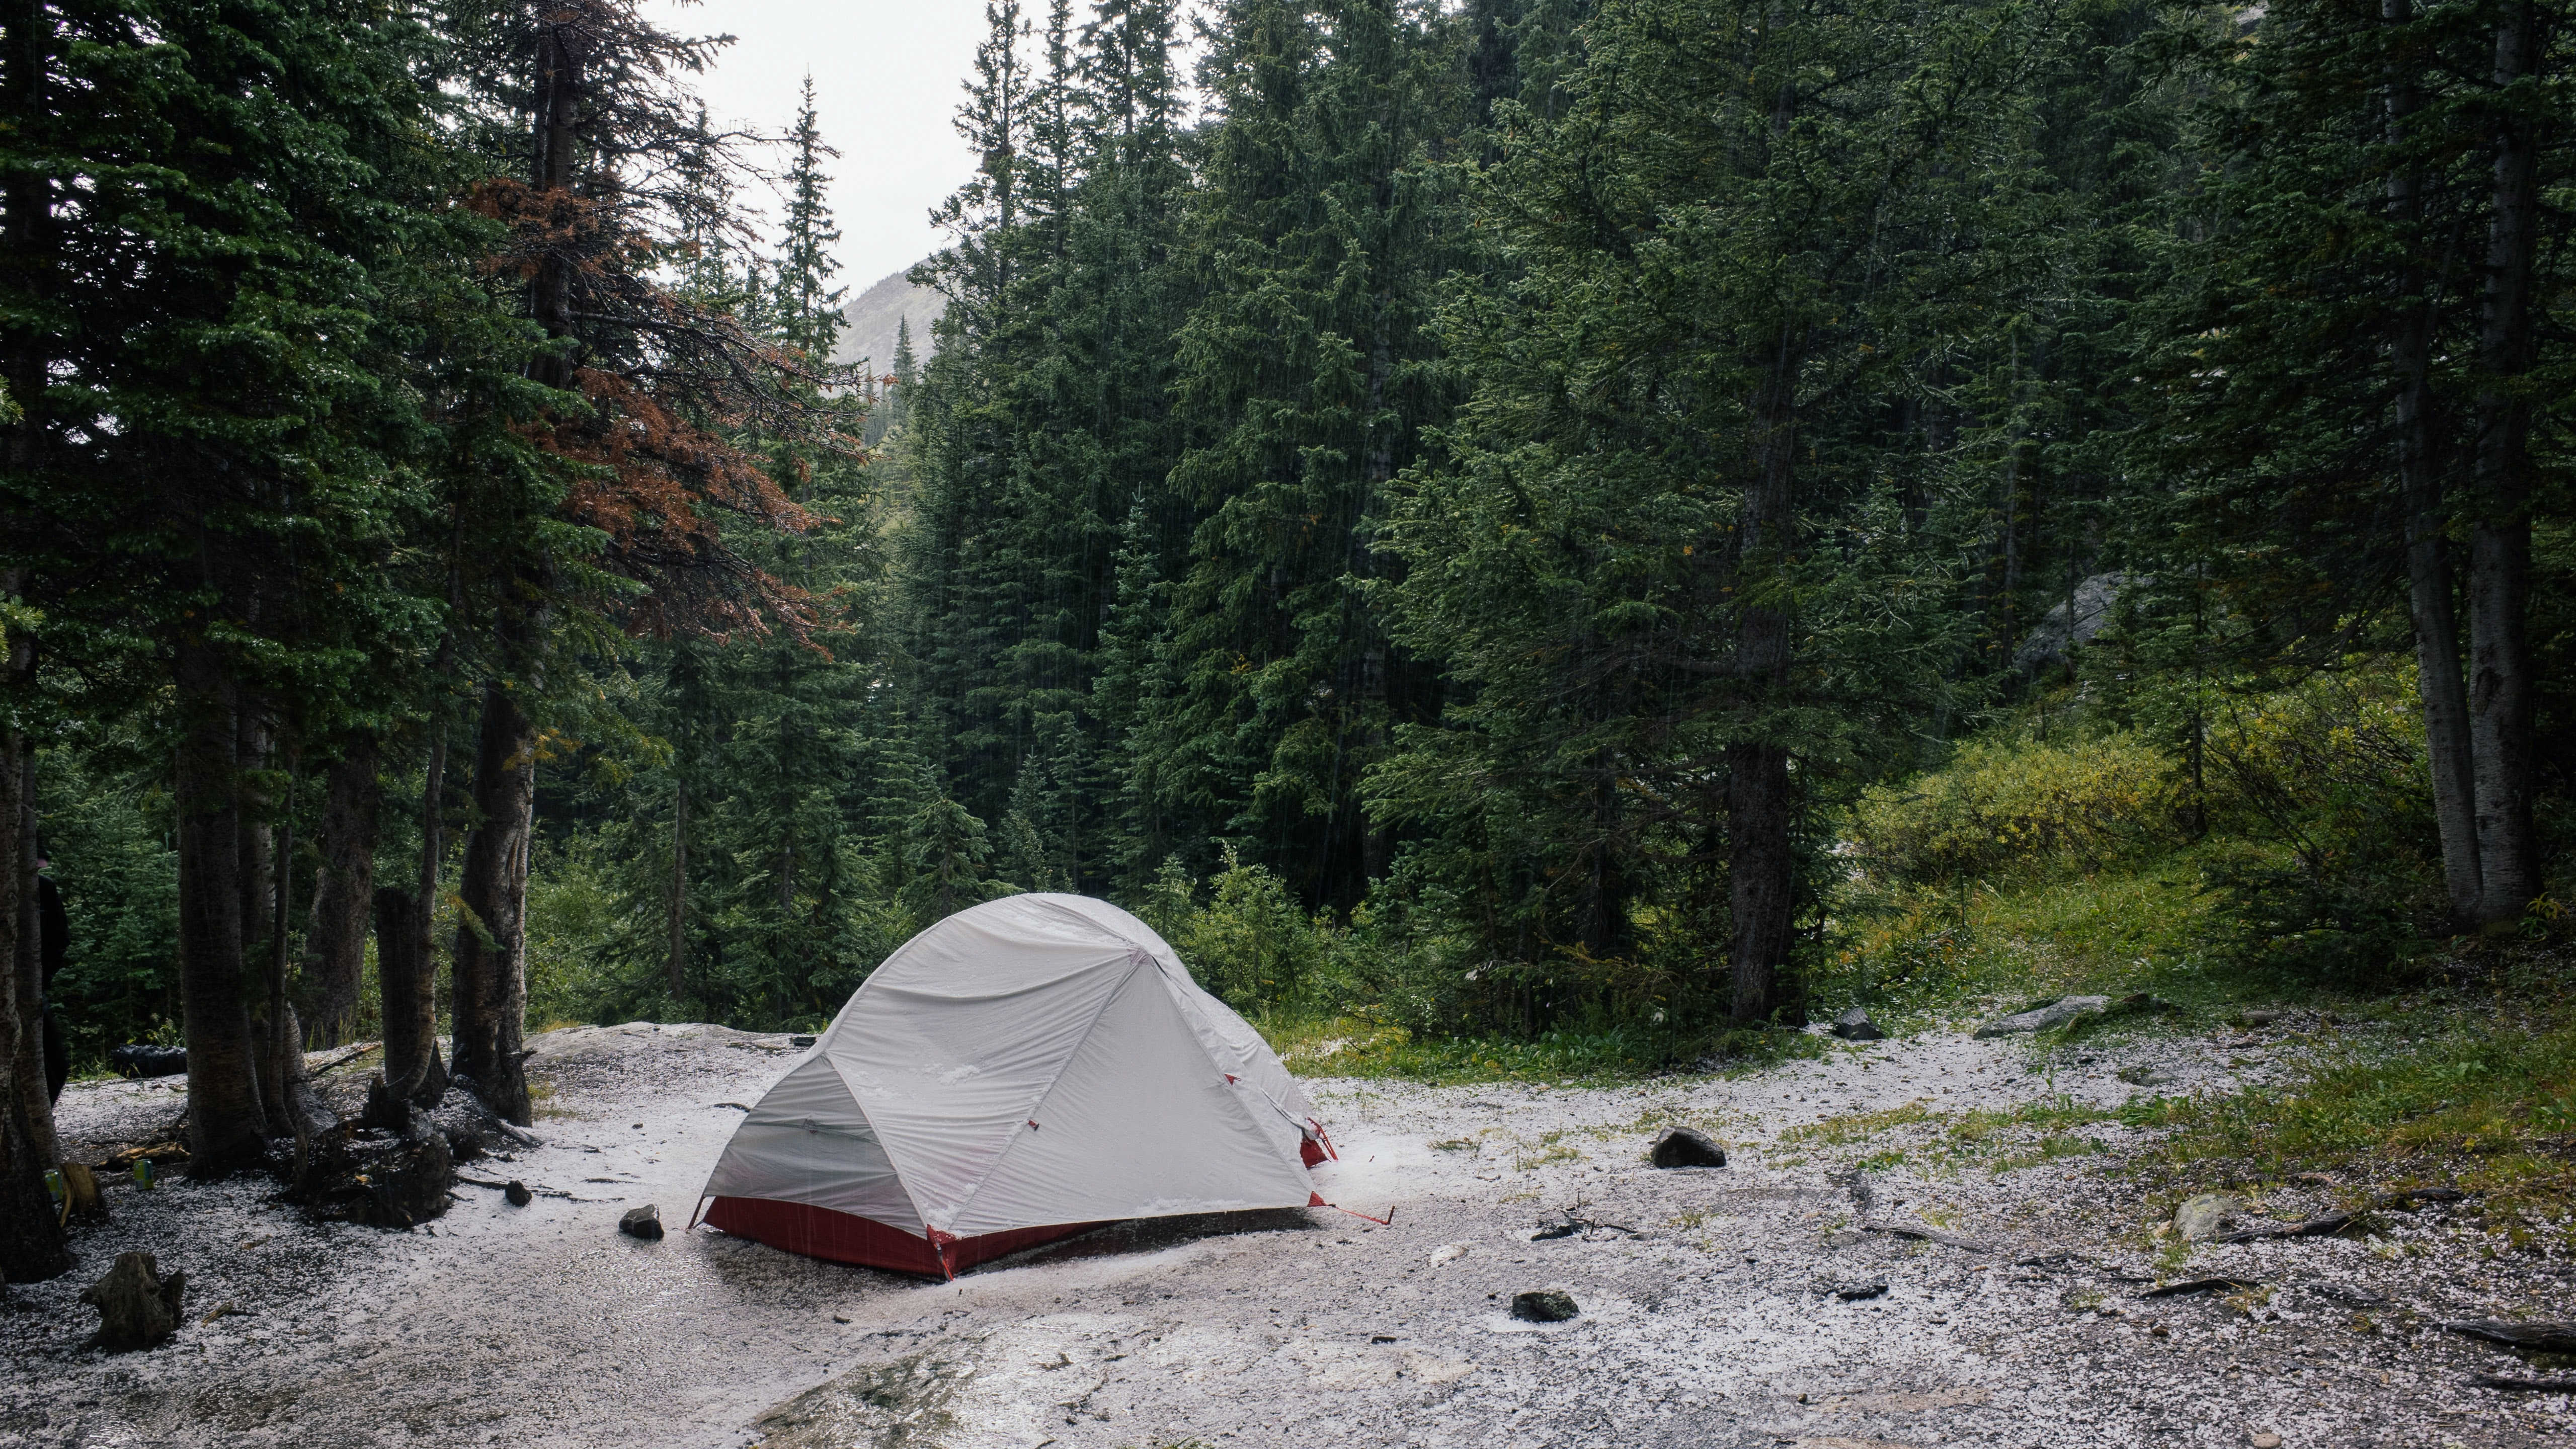 A single tent pitched on a gravel surfact amidst a wooded area with bright green trees